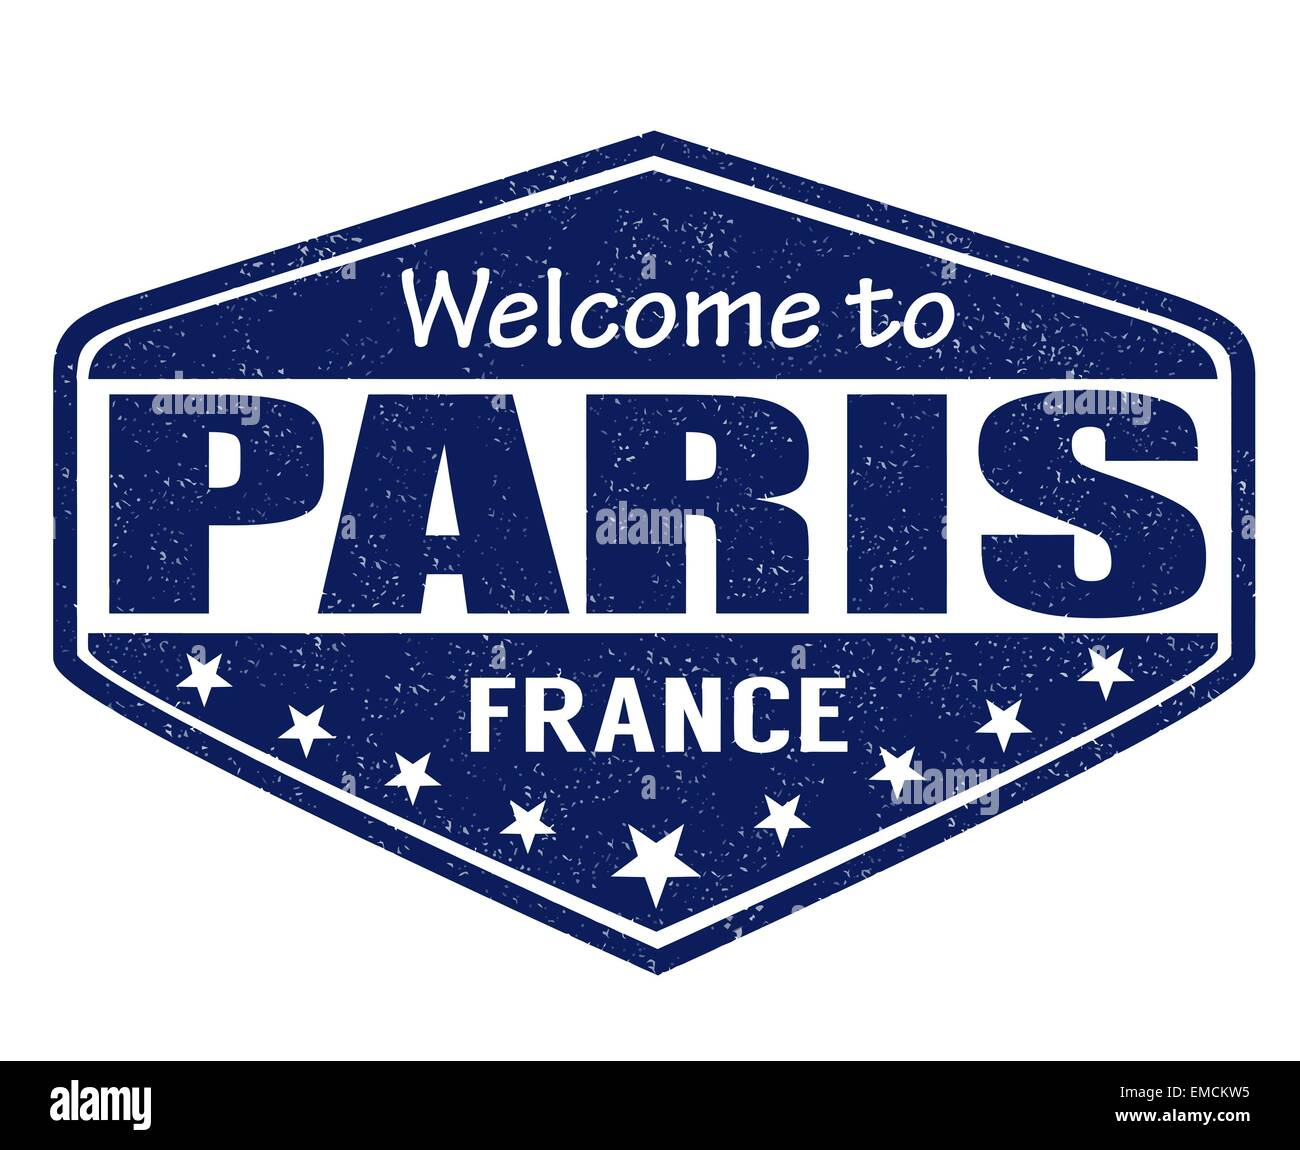 Welcome to Paris stamp - Stock Image